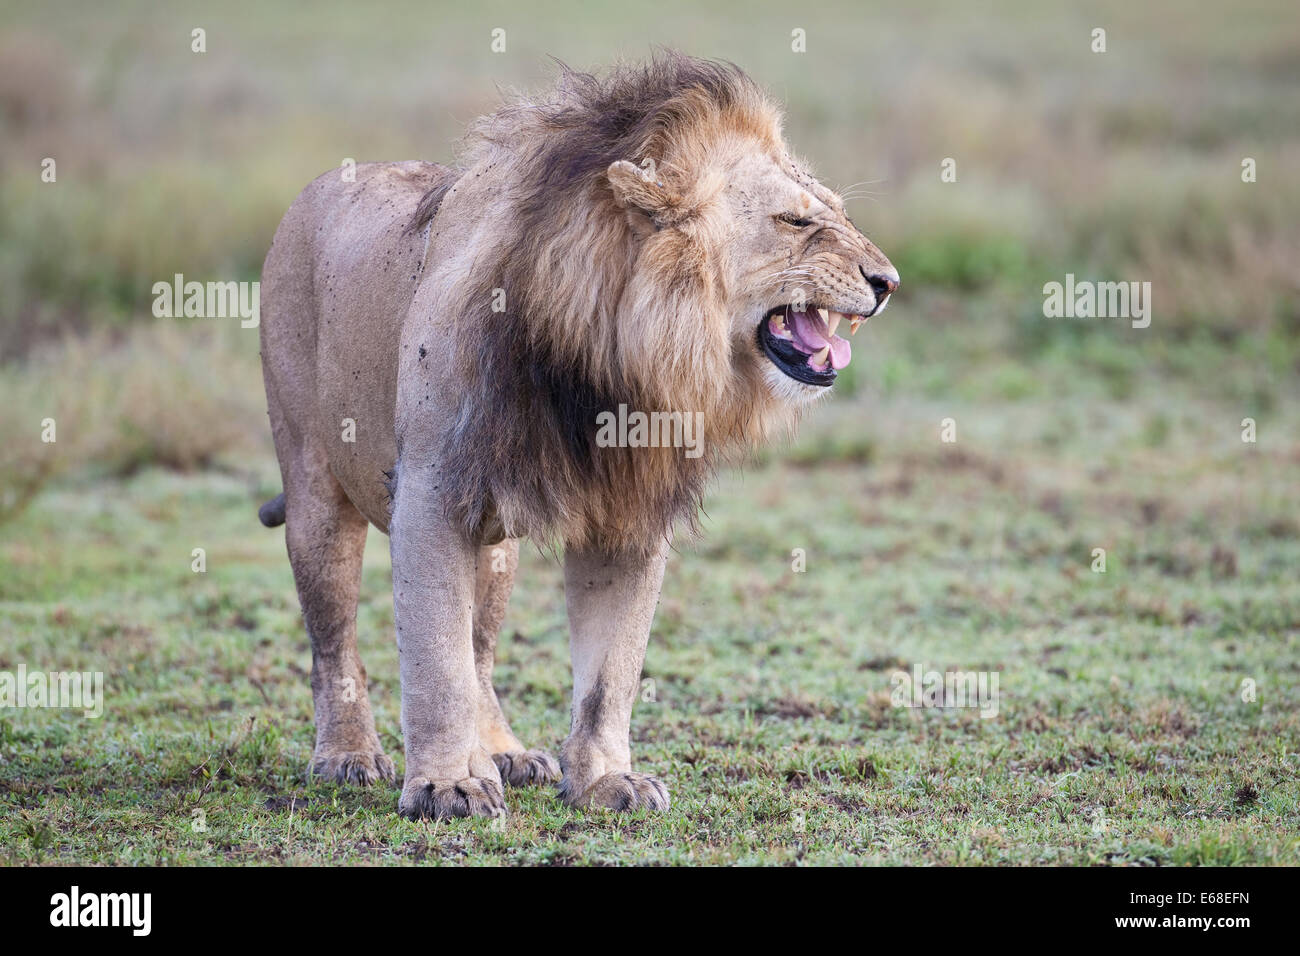 Lion Panthera leo snarling and walking across African grassland - Stock Image